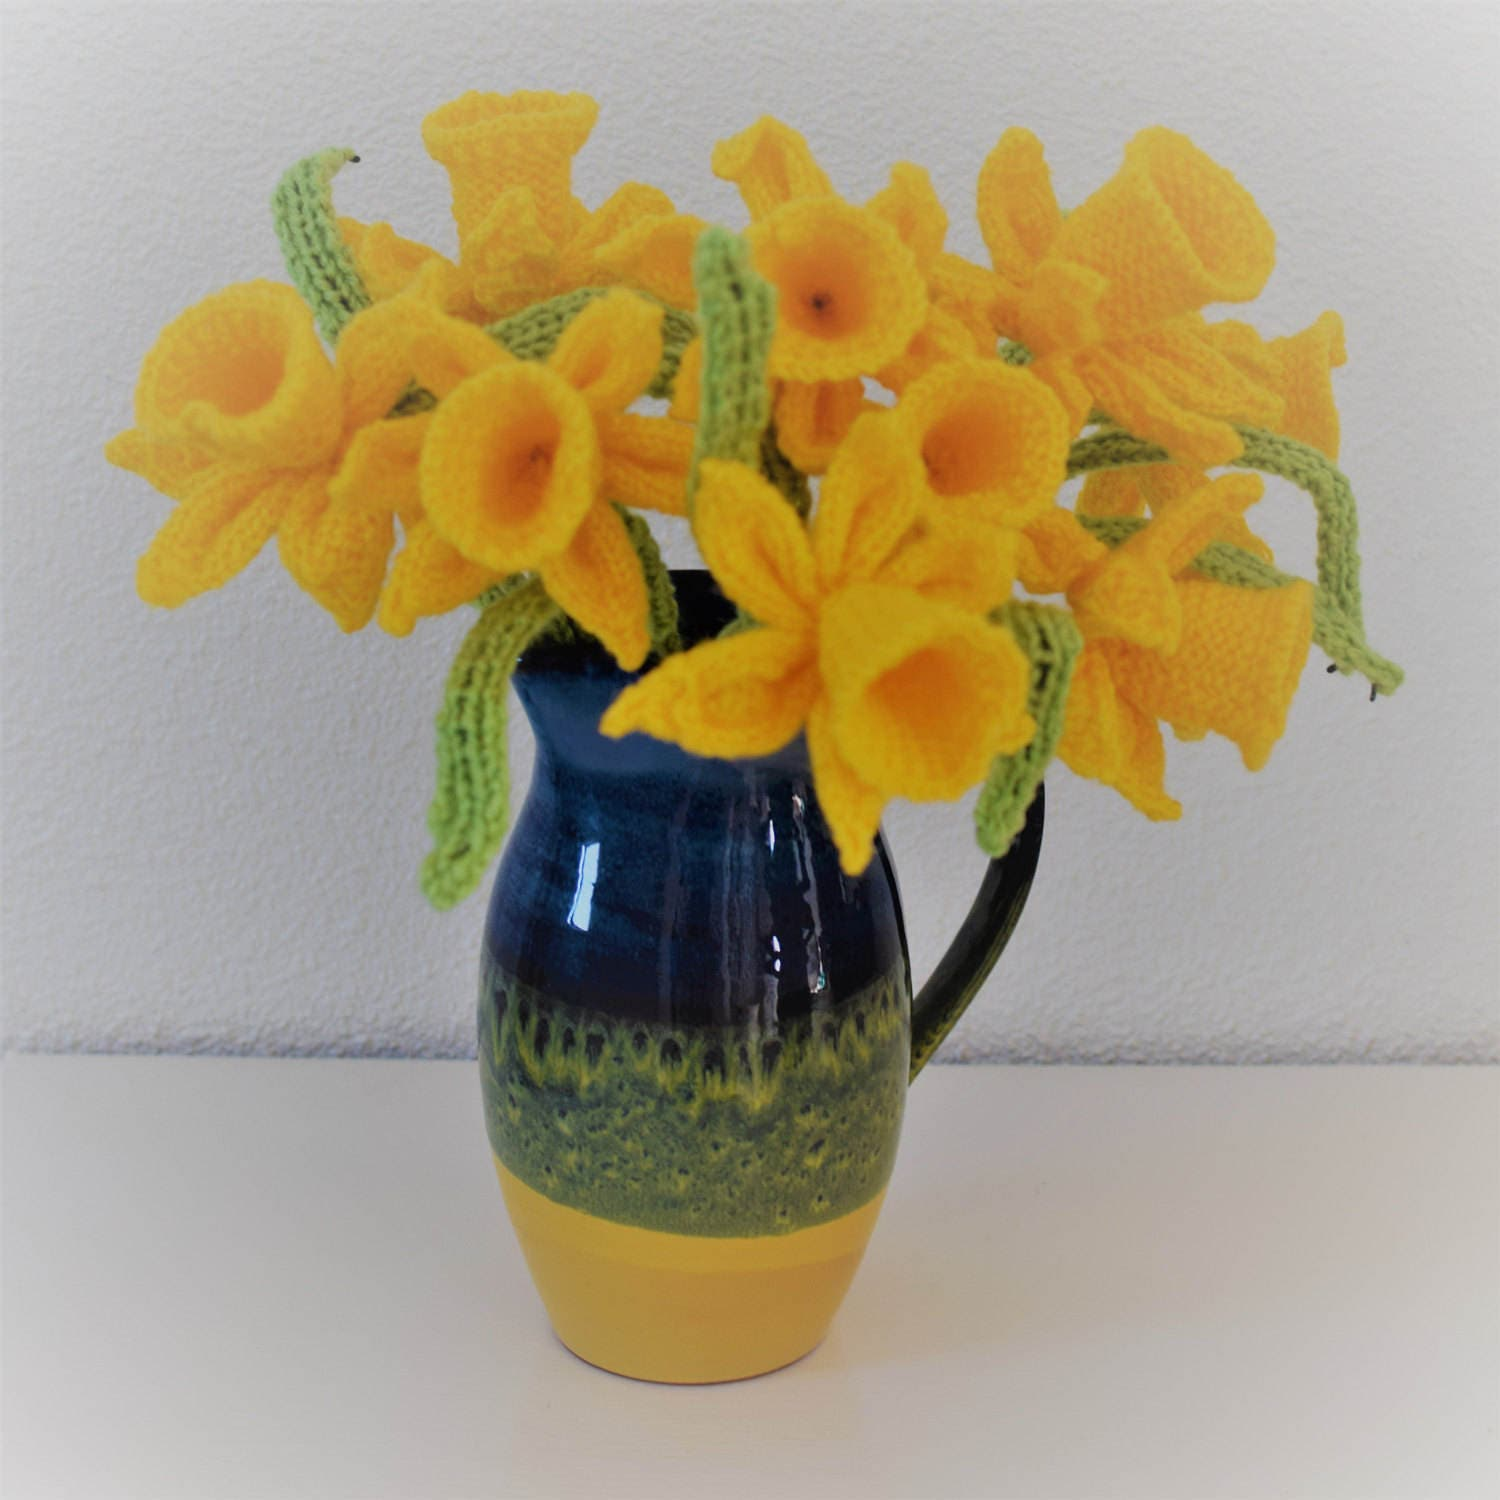 Flower knitting pattern, Knitting pattern for daffodils